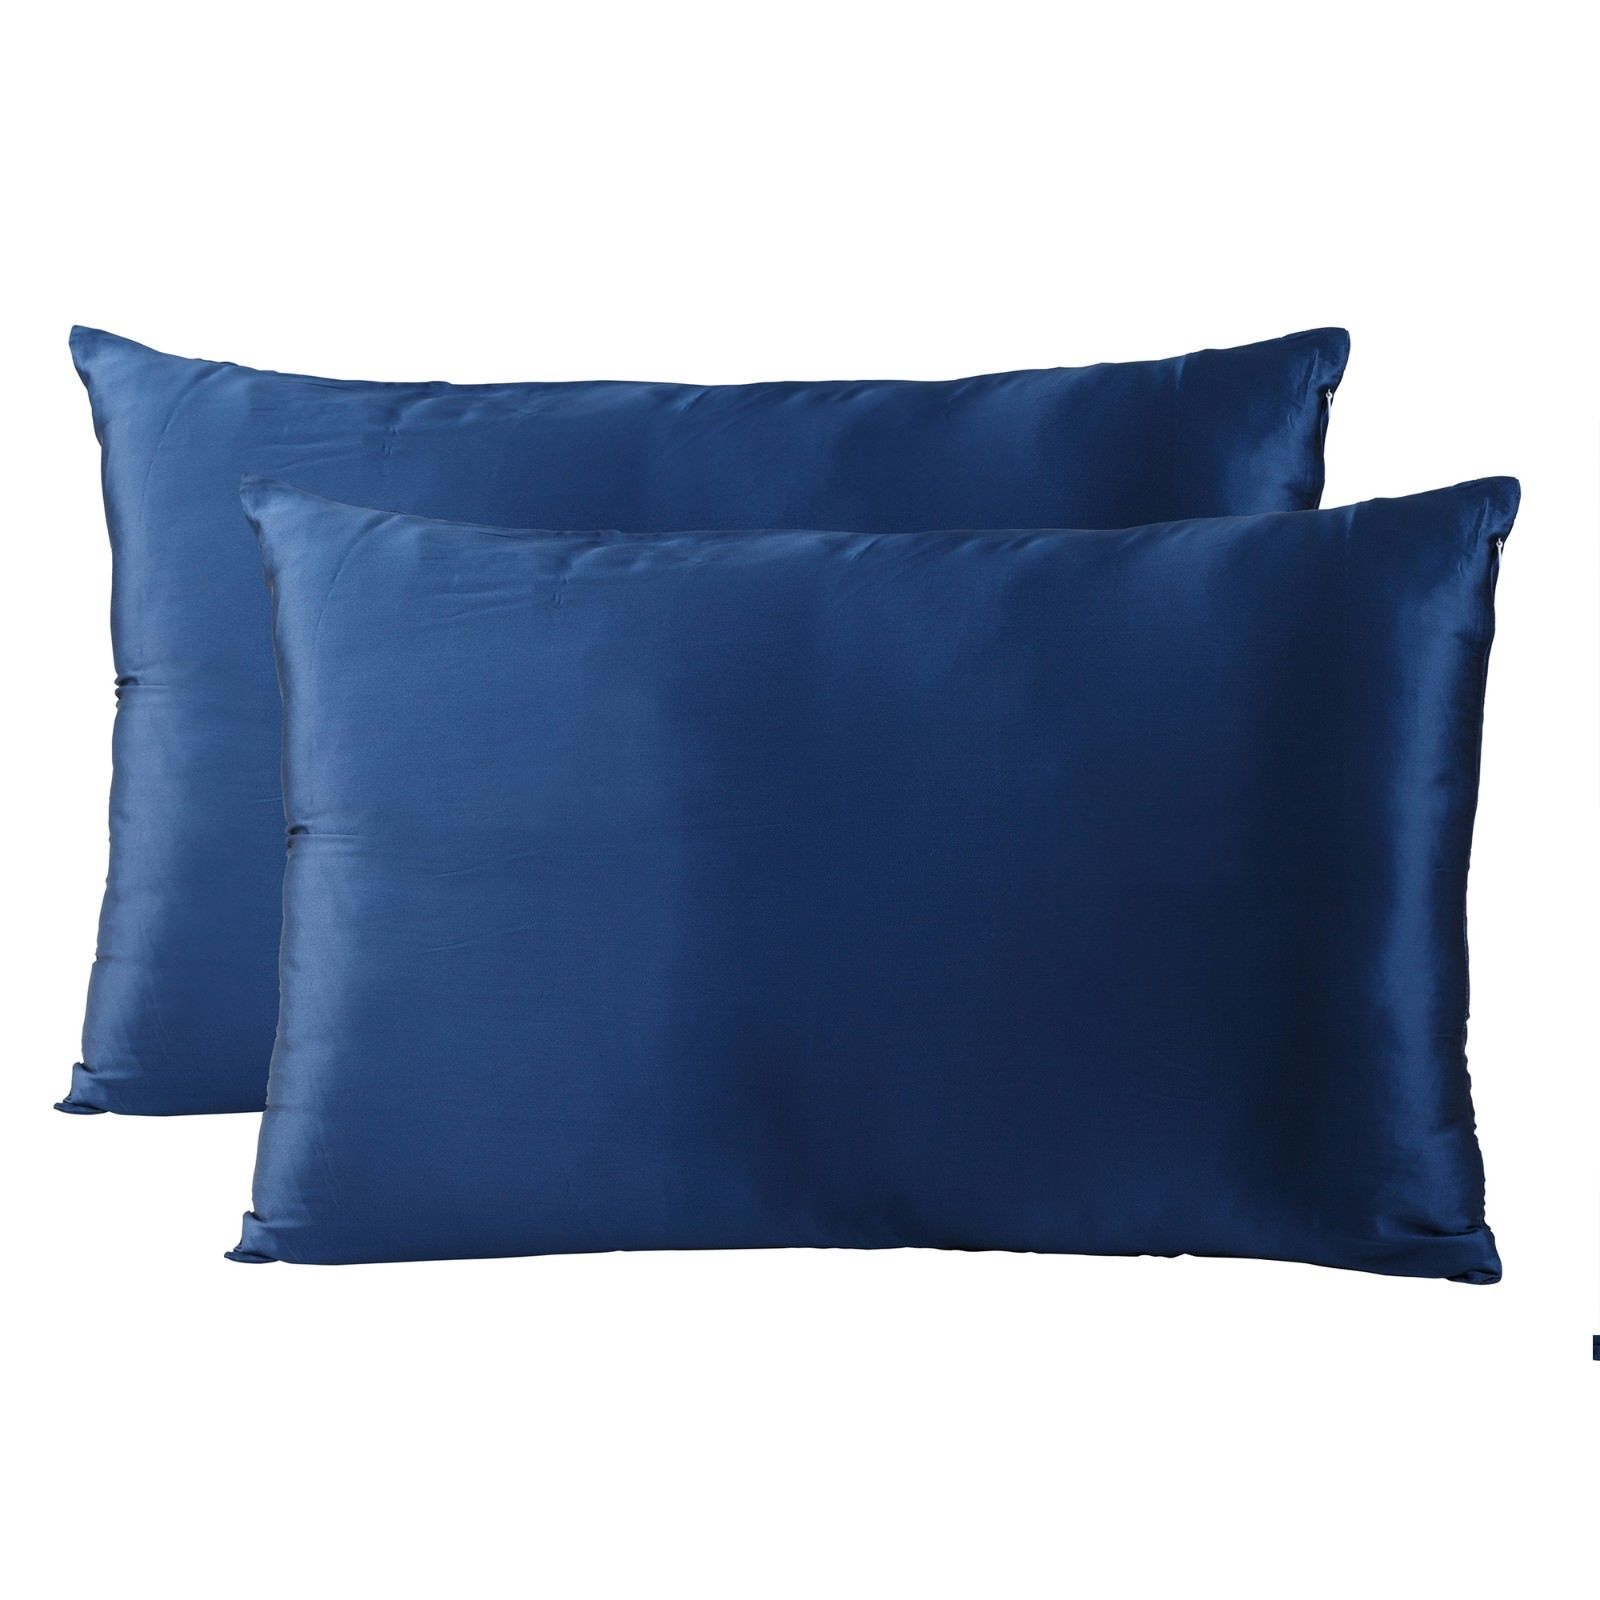 Royal-Comfort-Mulberry-Soft-Silk-Hypoallergenic-Pillowcase-Twin-Pack-51-x-76cm thumbnail 32